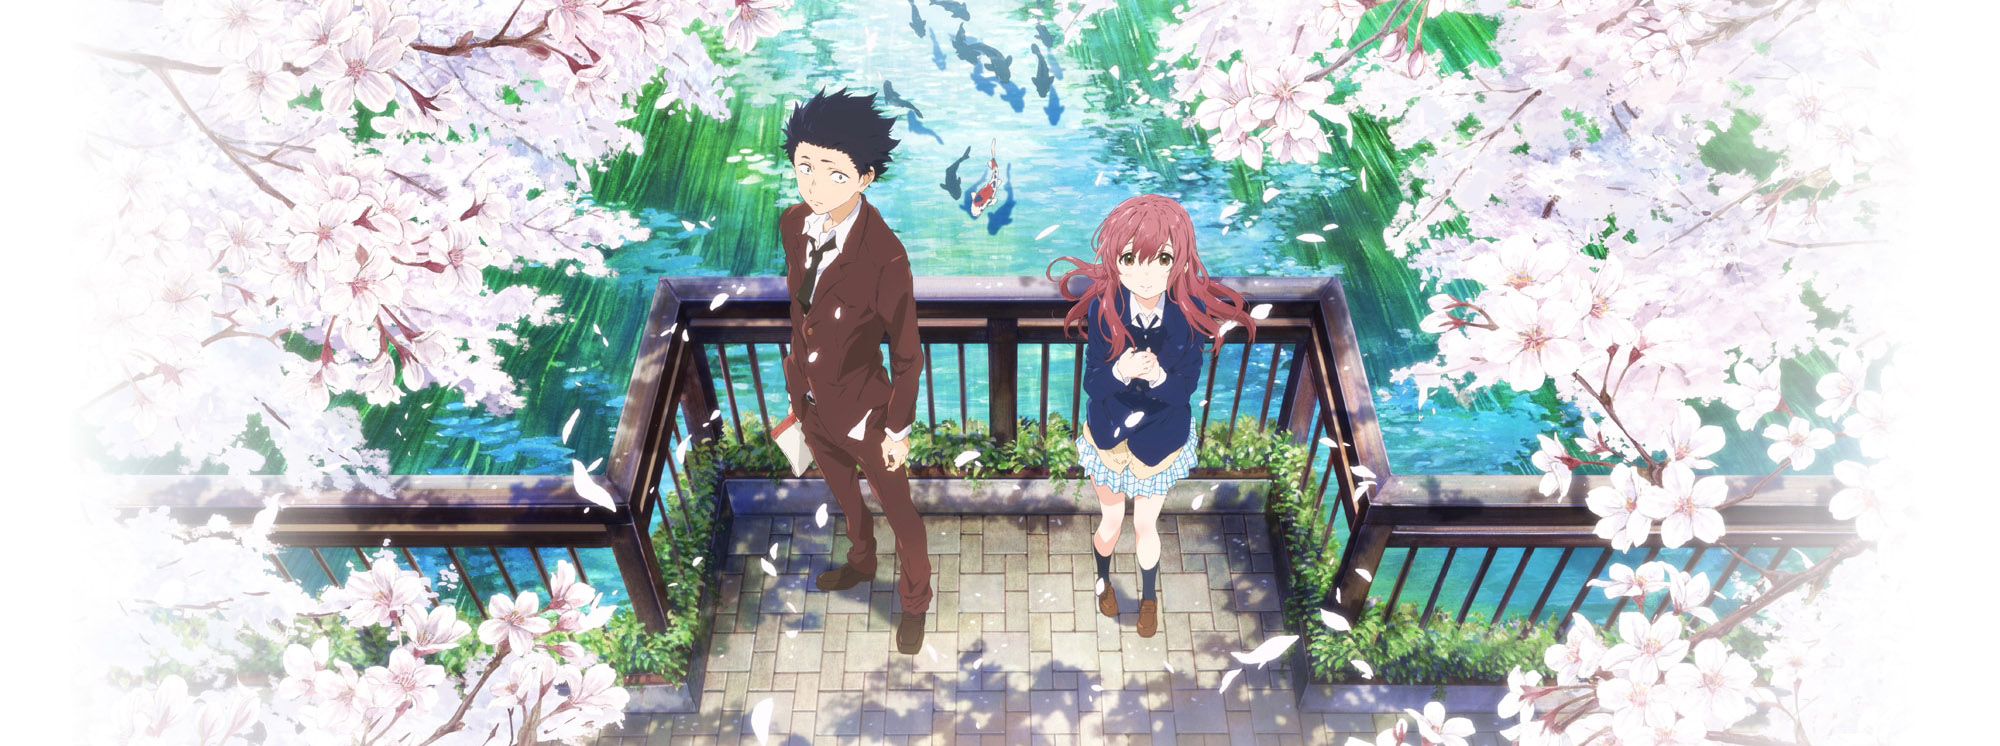 koe-no-katachi-banner